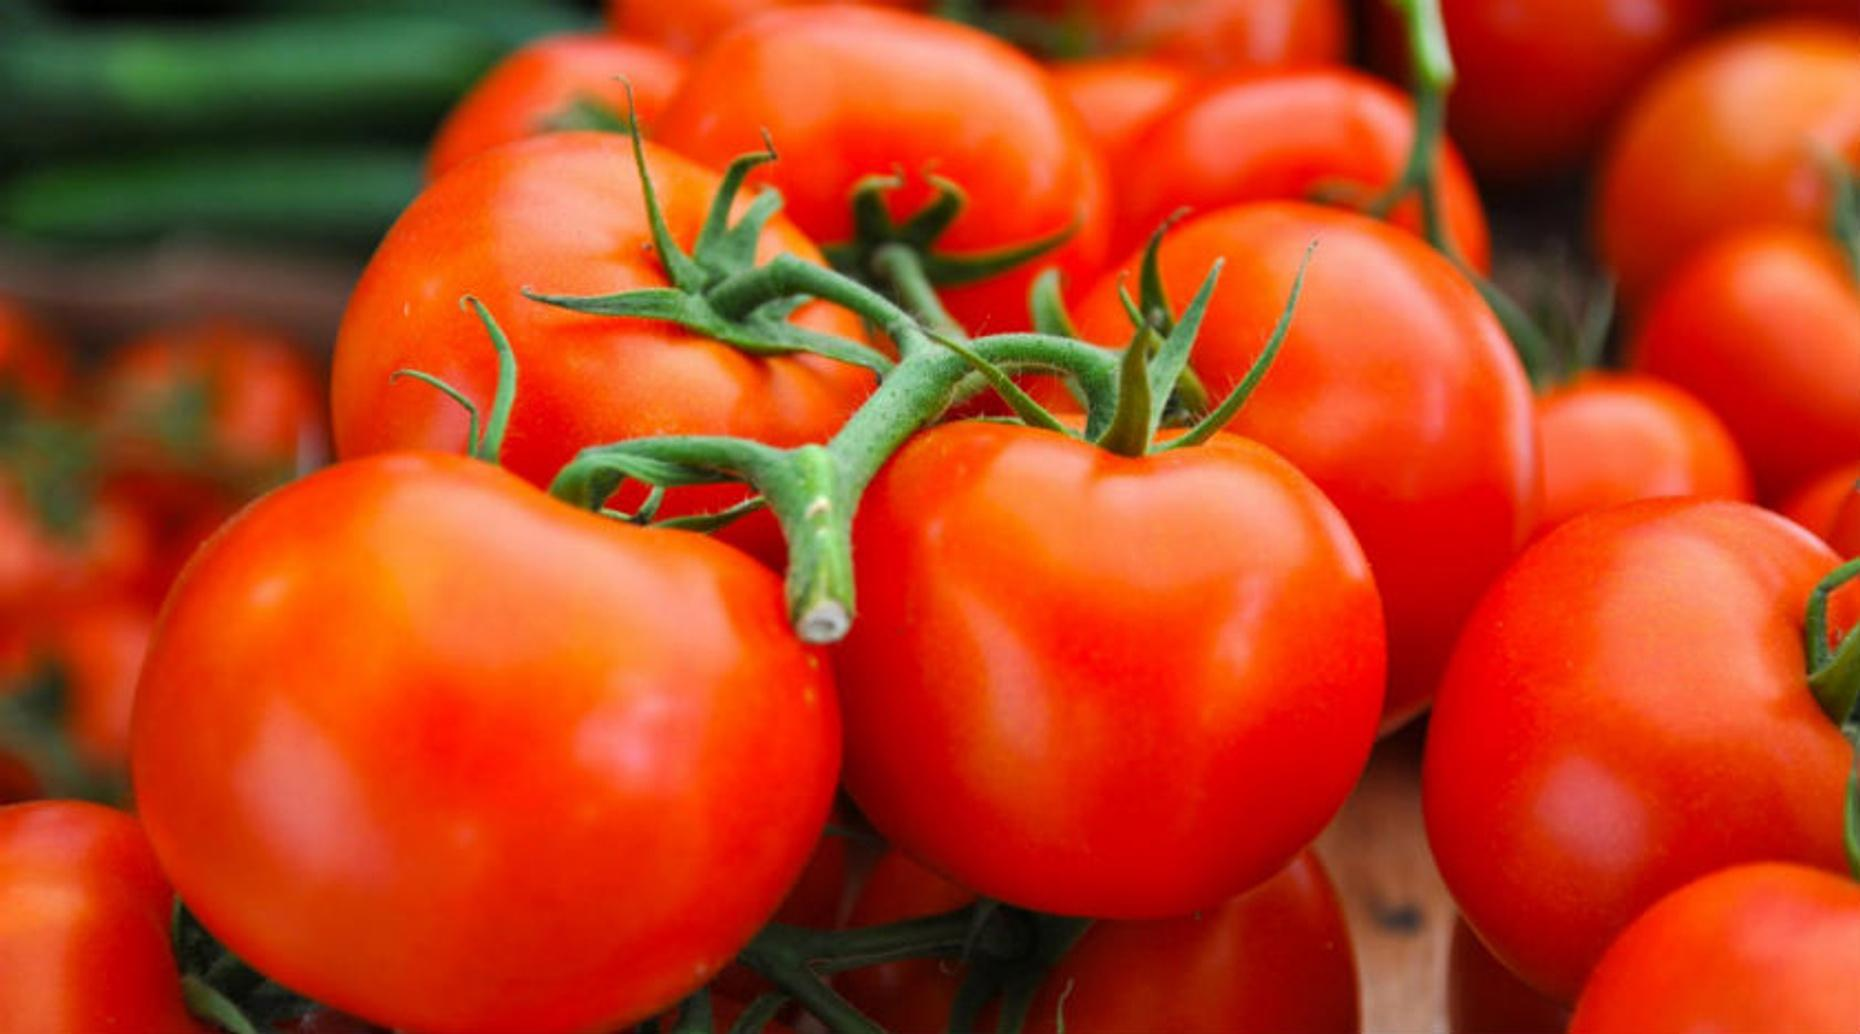 Tomato Culinary Class in Savannah